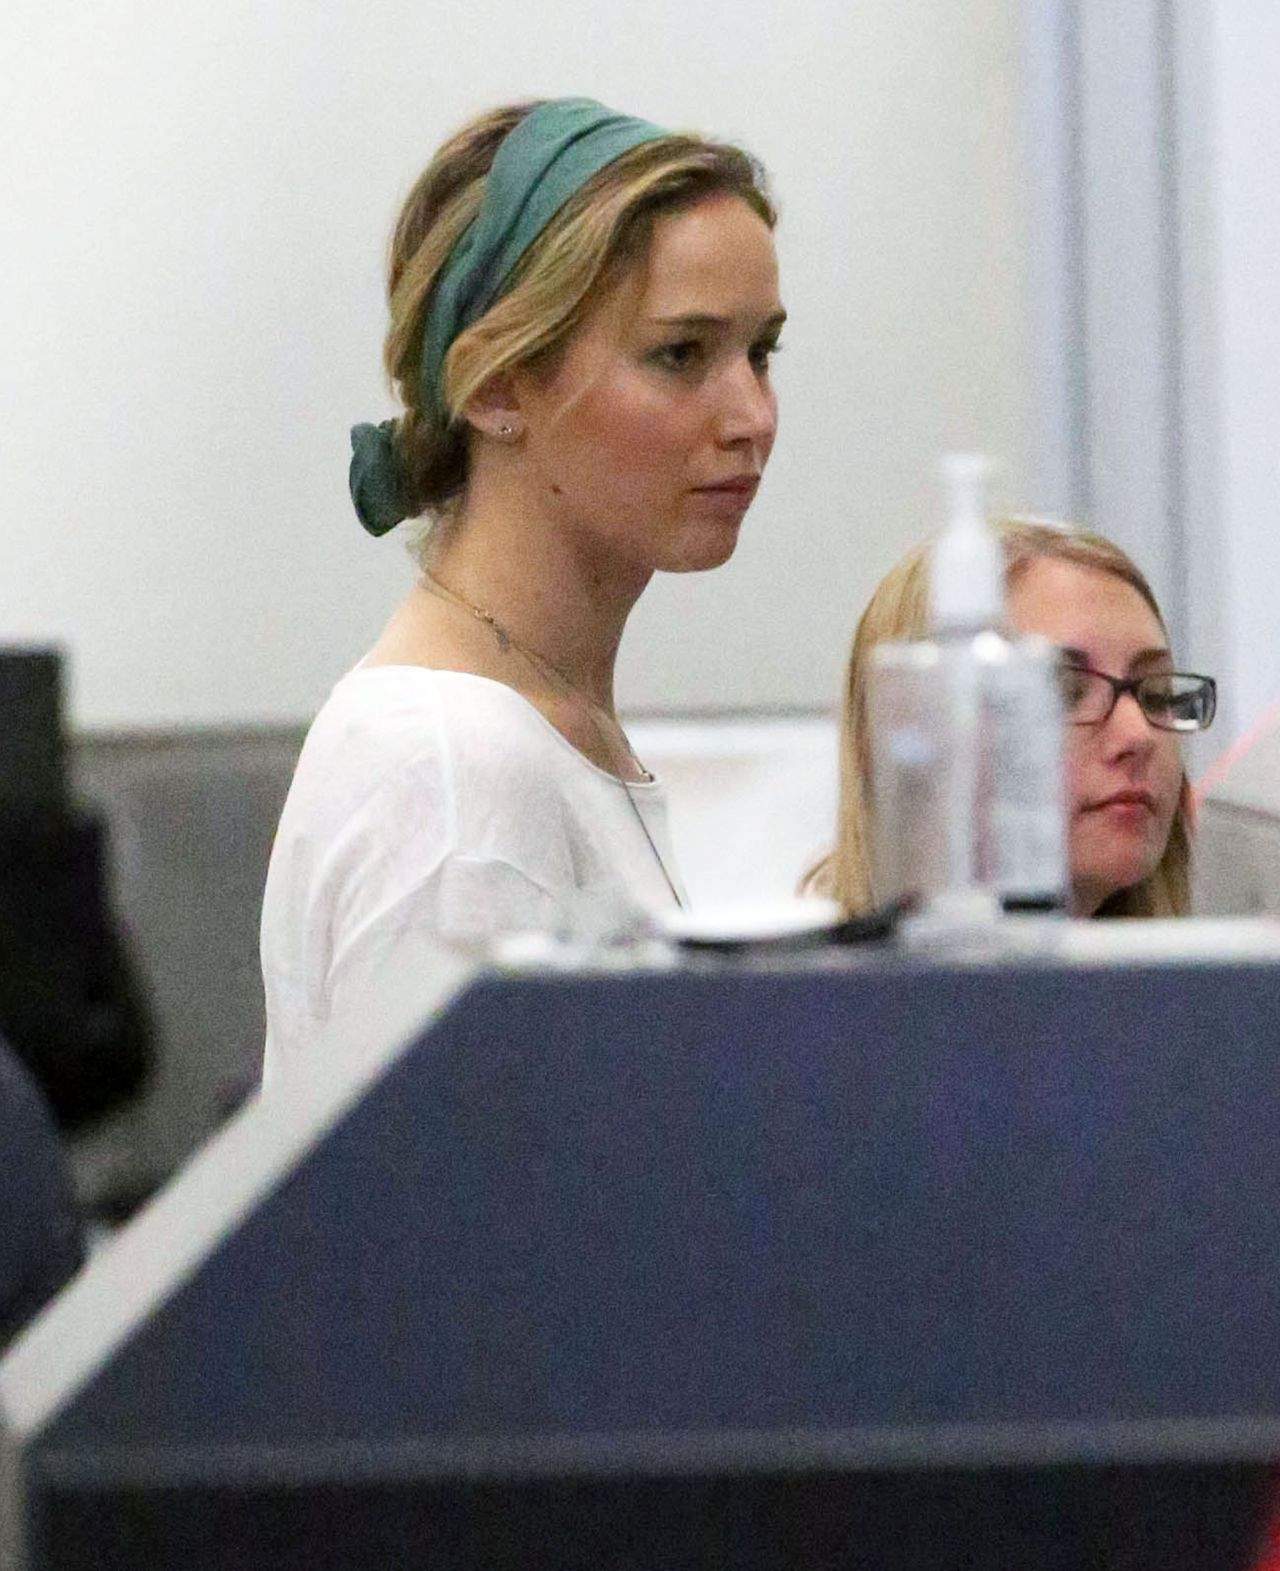 Jennifer Lawrence at LAX Airport in Los Angeles - January 2015